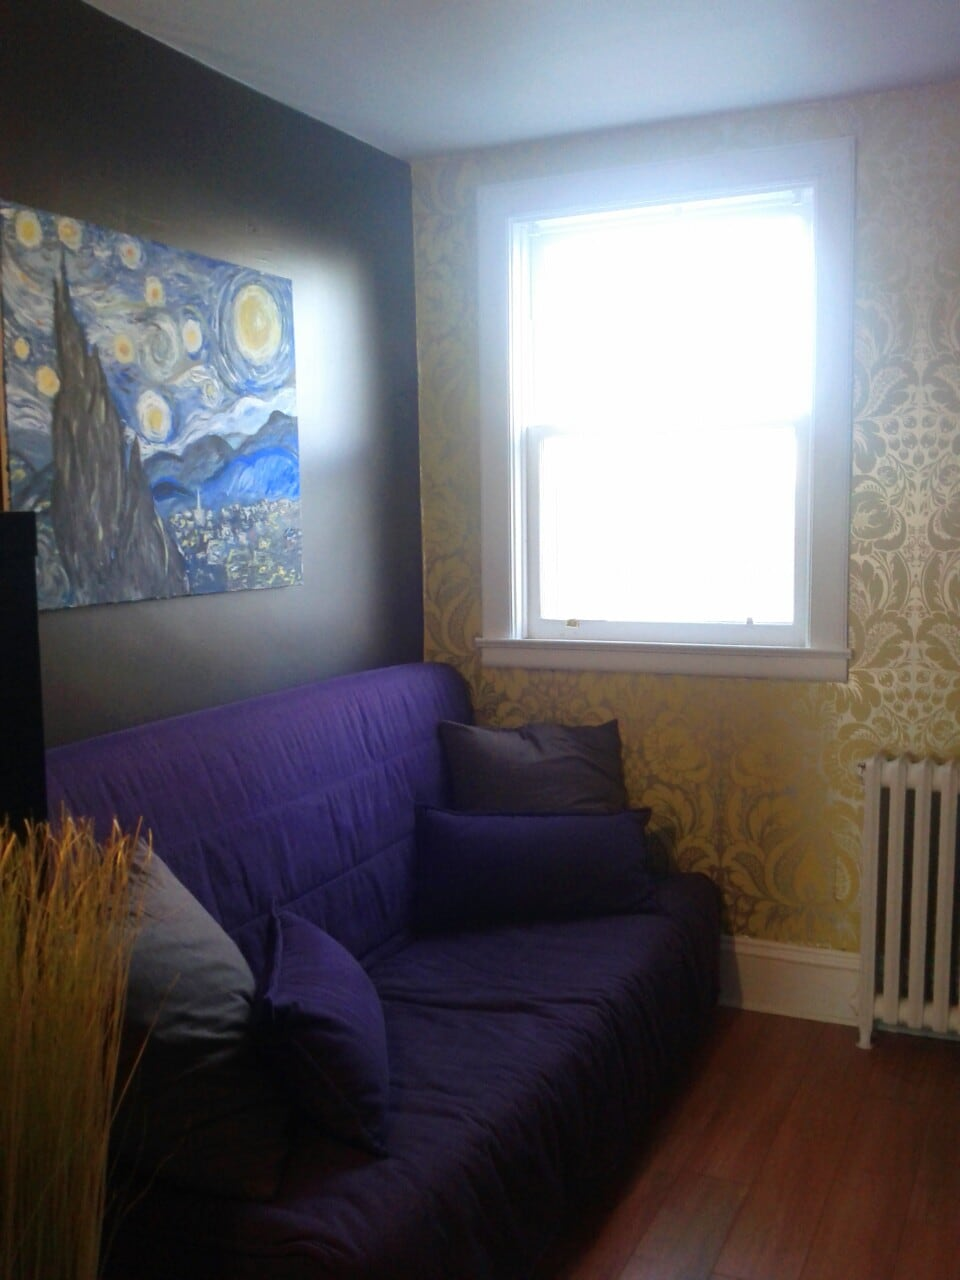 the guest room: bright, warm and a little van Gogh to keep you inspired - that purple futon folds out into glorious splendour